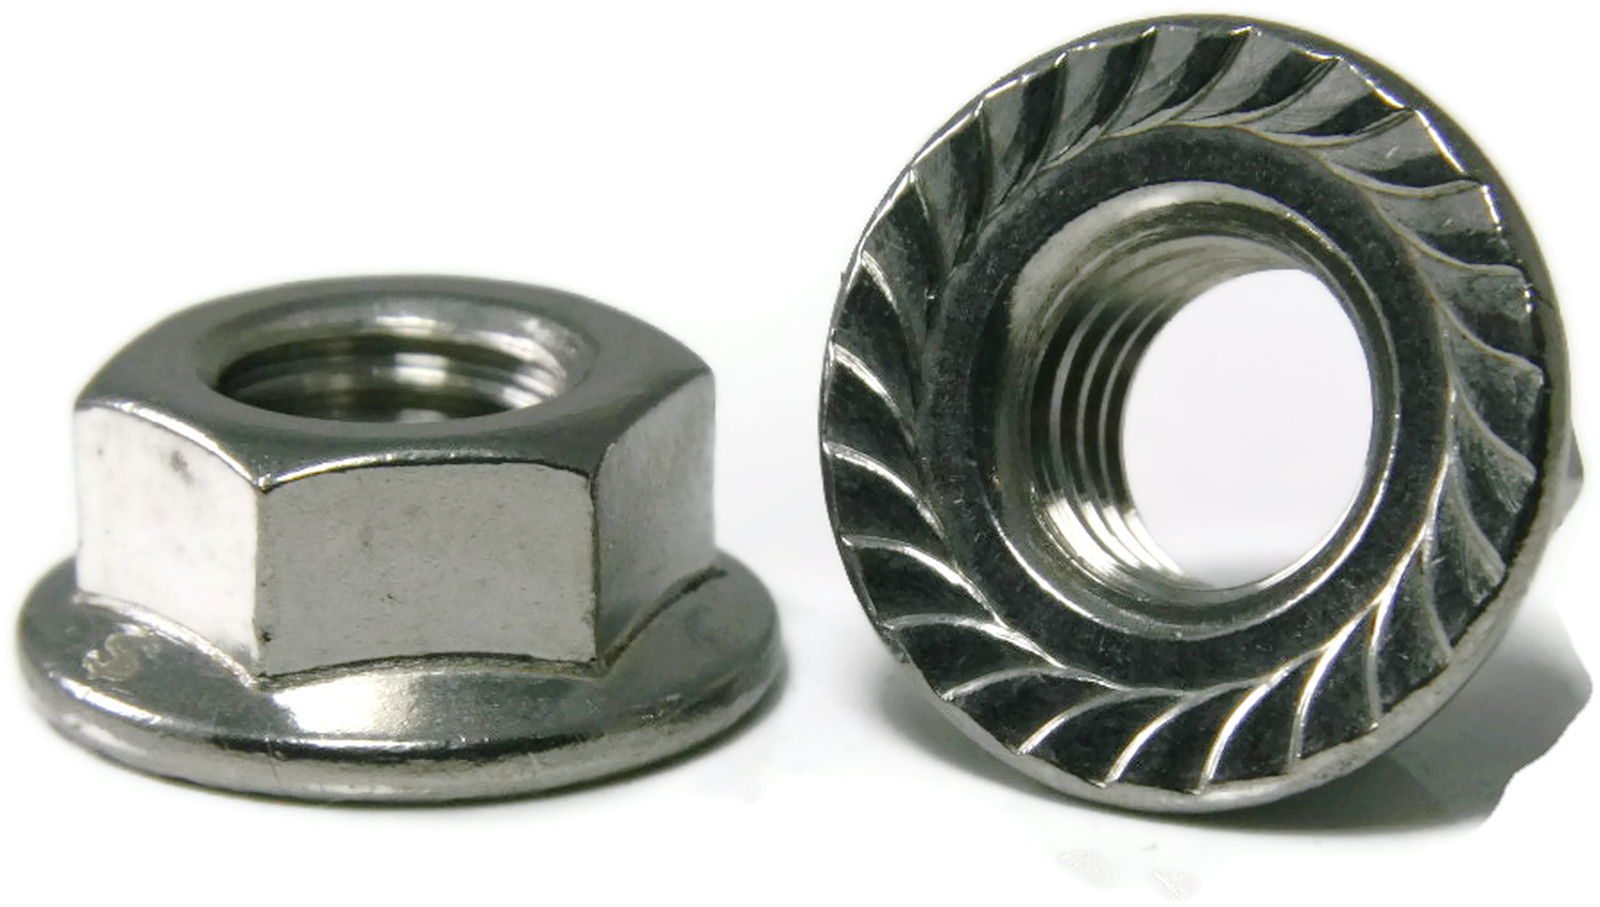 Stainless Steel Hex Flange Nut Serrated Unc 5 16 18 Qty